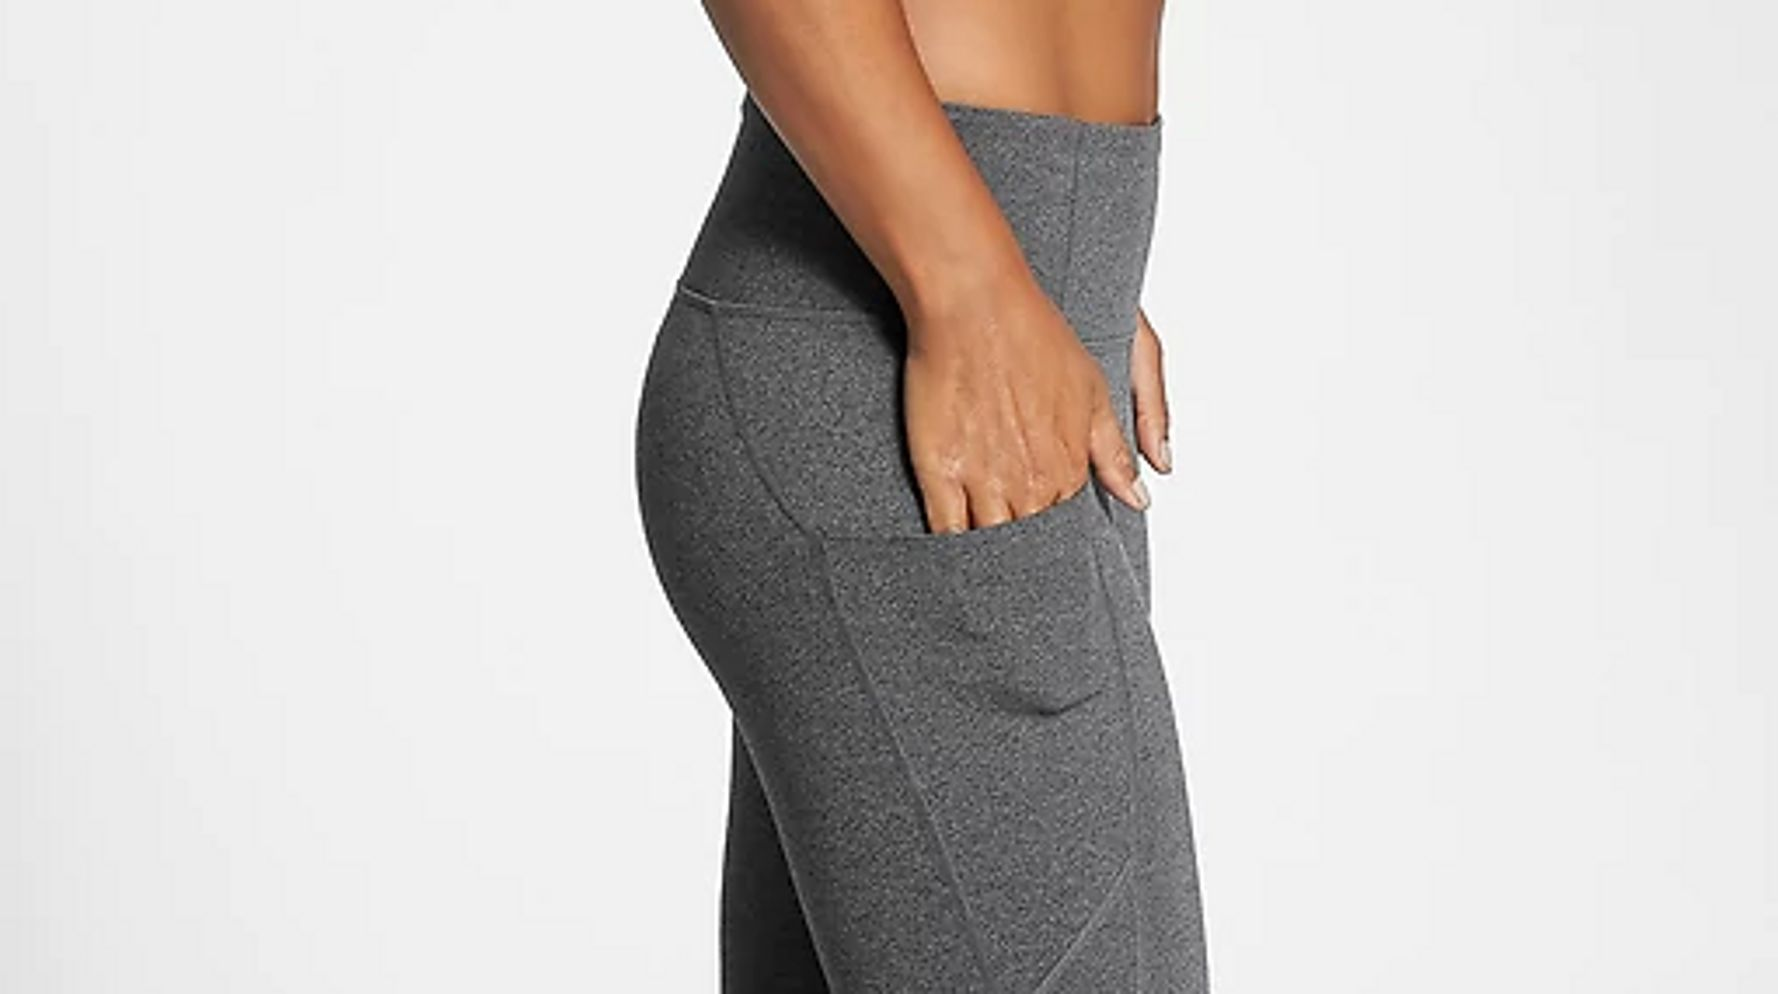 13 Yoga Pants With Pockets That Ll Make Your Workout So Much Better Huffpost Life